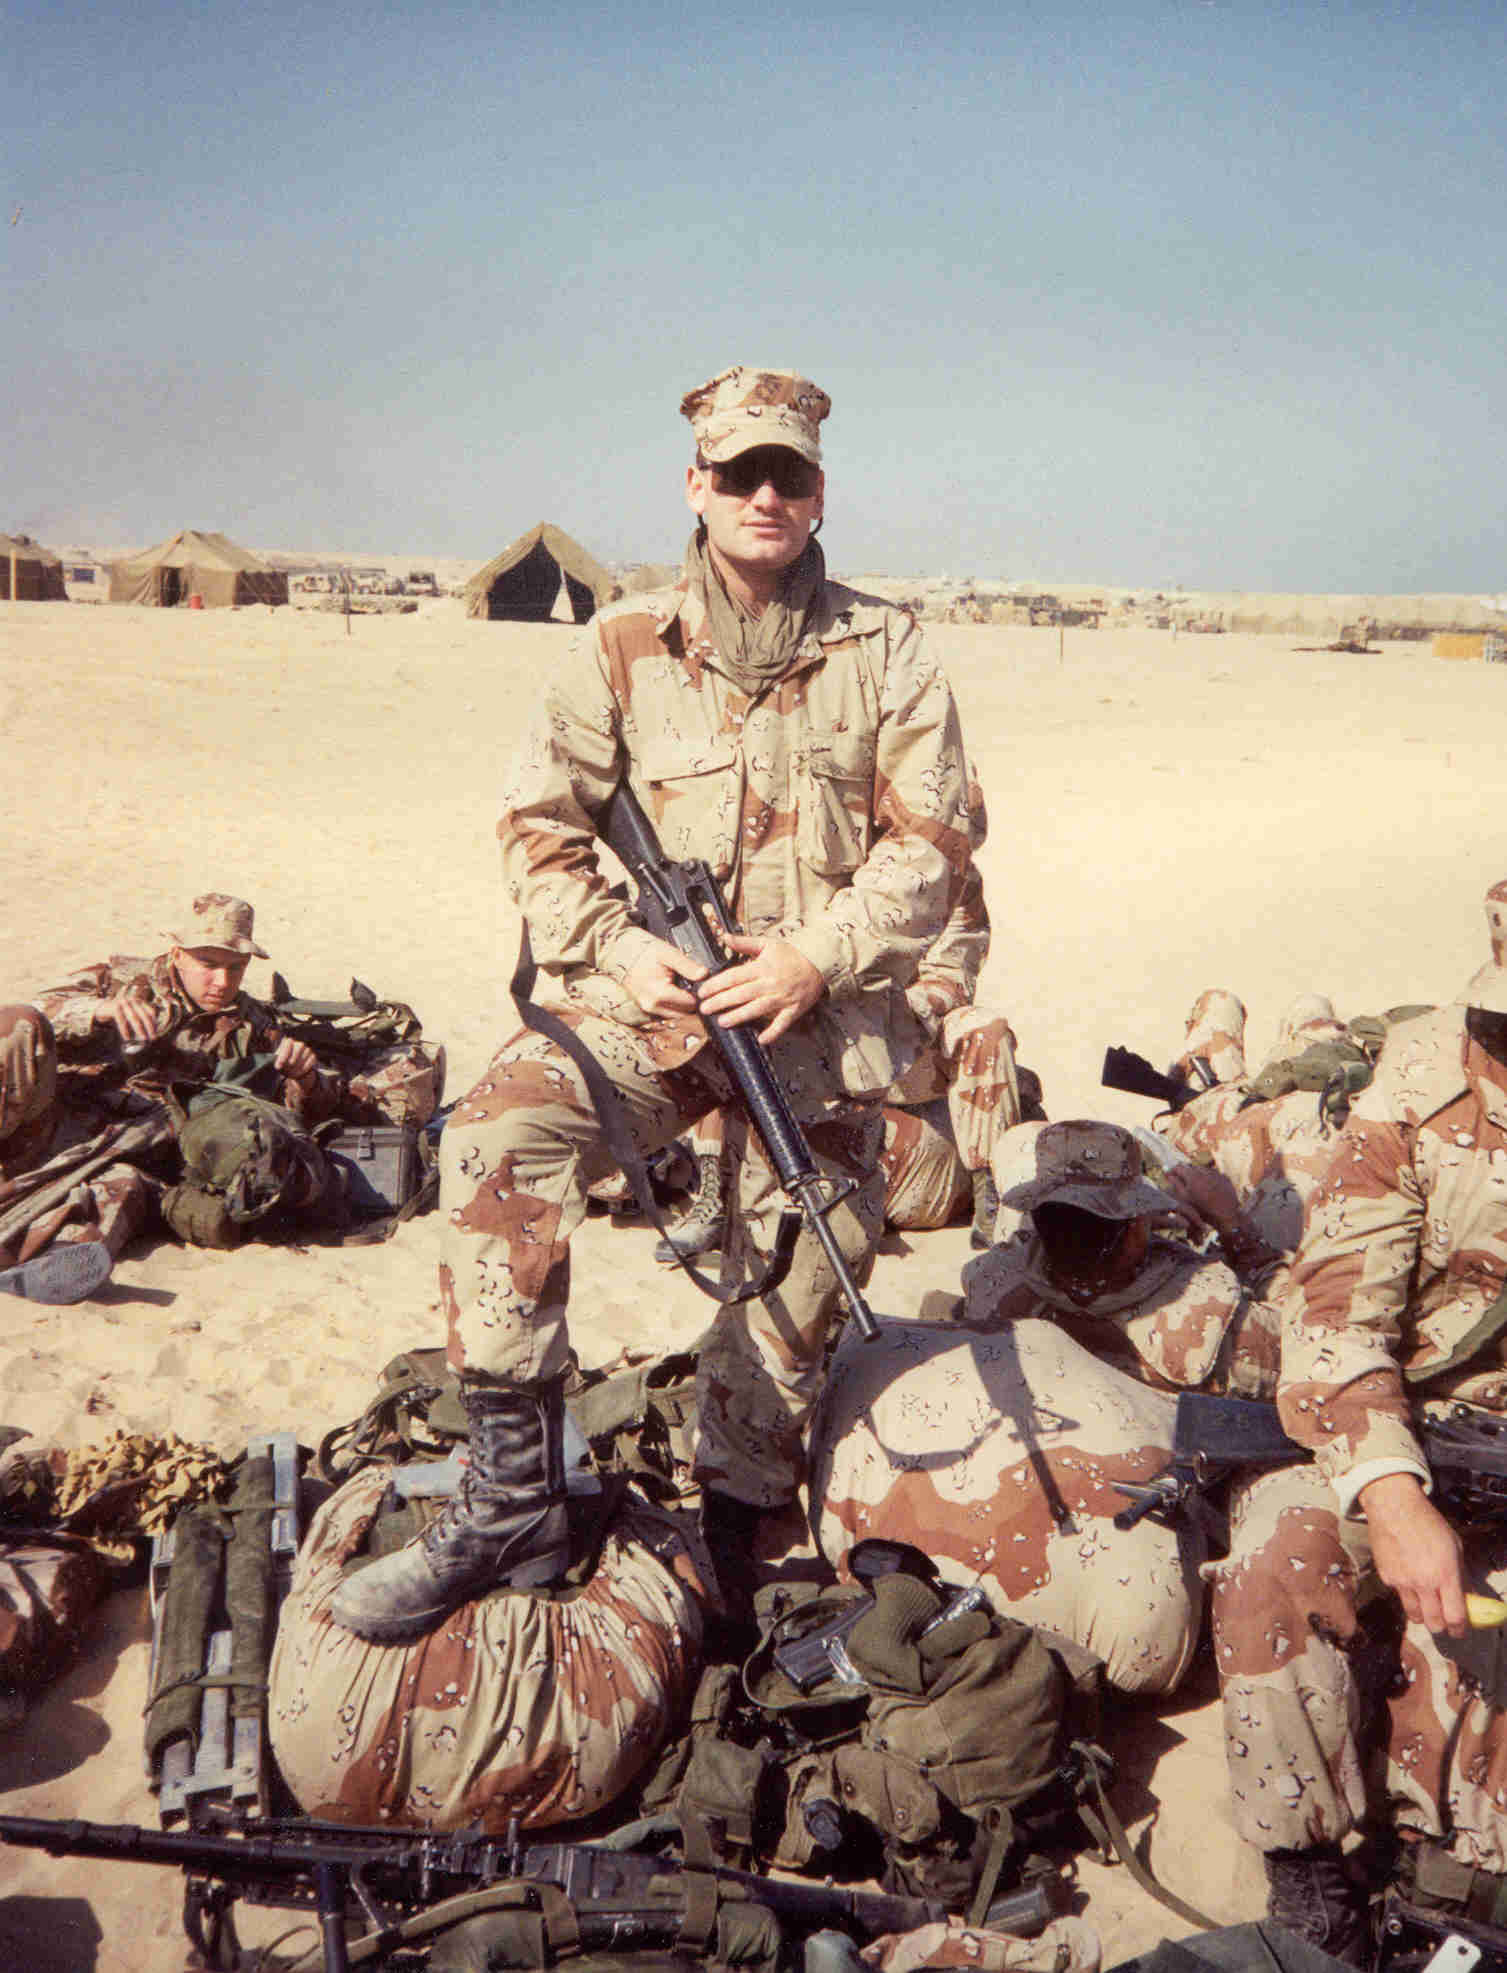 desert storm essay Need essay sample on compare and contrast of counterinsurgency between operation desert storm and vietnam we will write a cheap essay sample on compare and contrast of counterinsurgency between operation desert storm and vietnam specifically for you for only $1290/page.